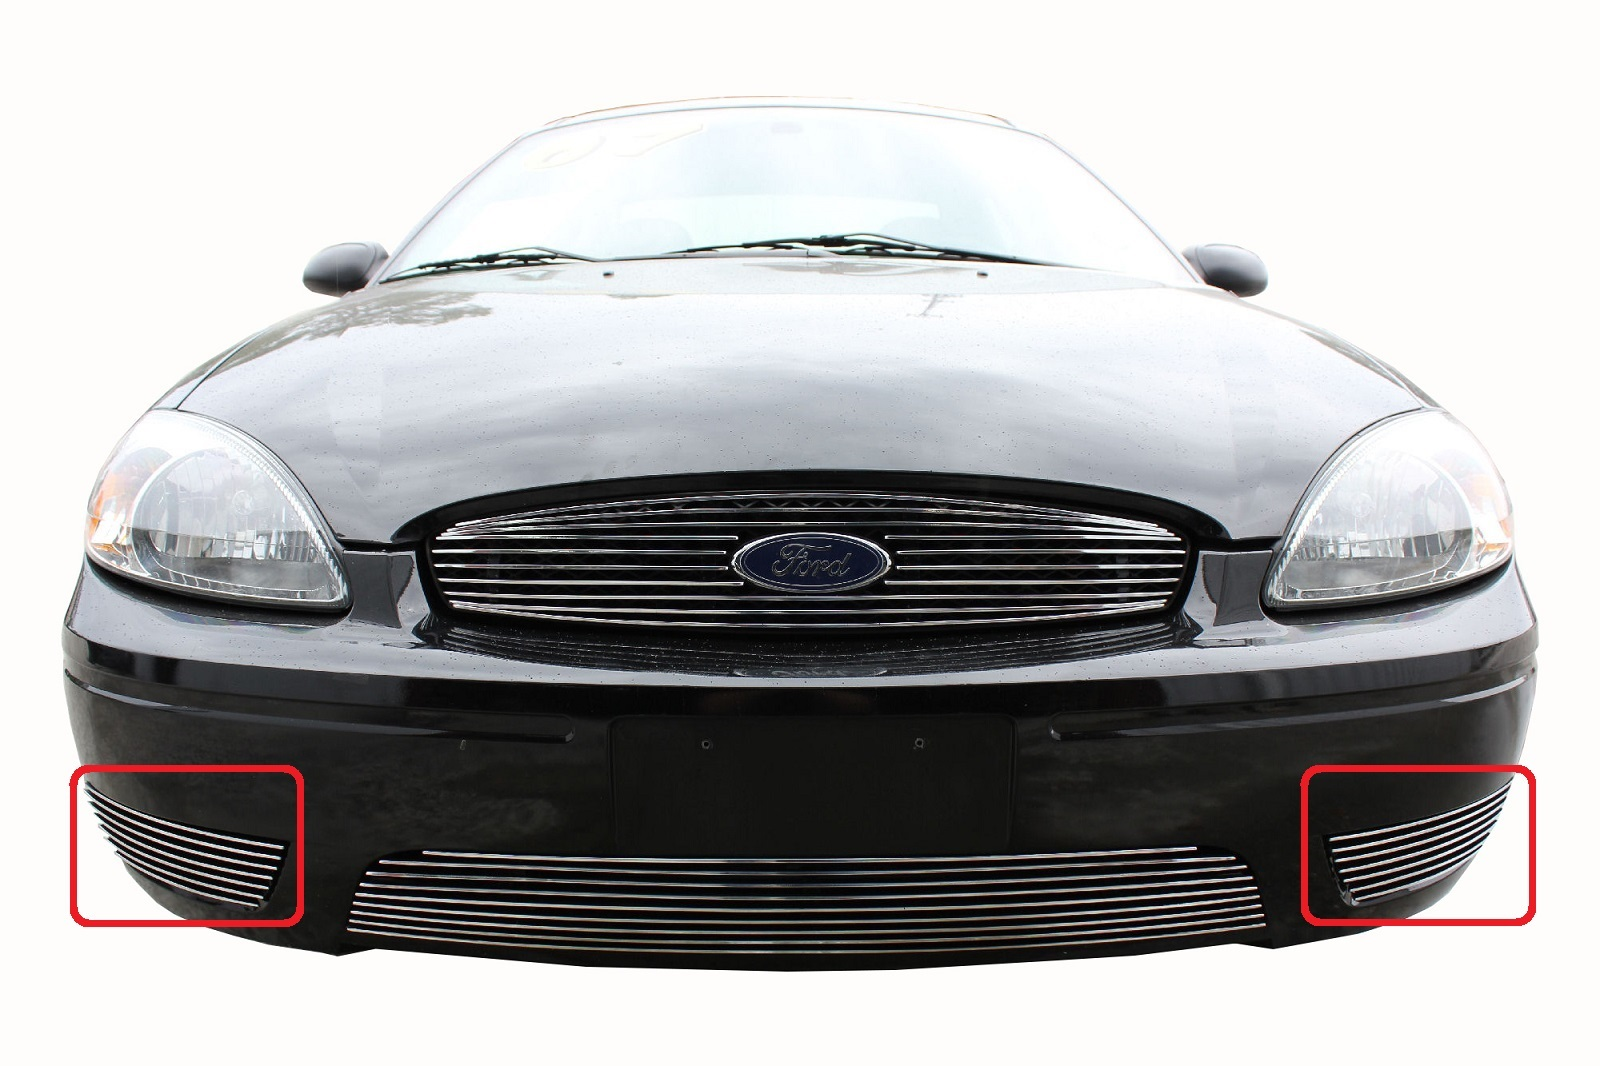 2004 ford taurus 2pc bumper accent billet grille kit quick view